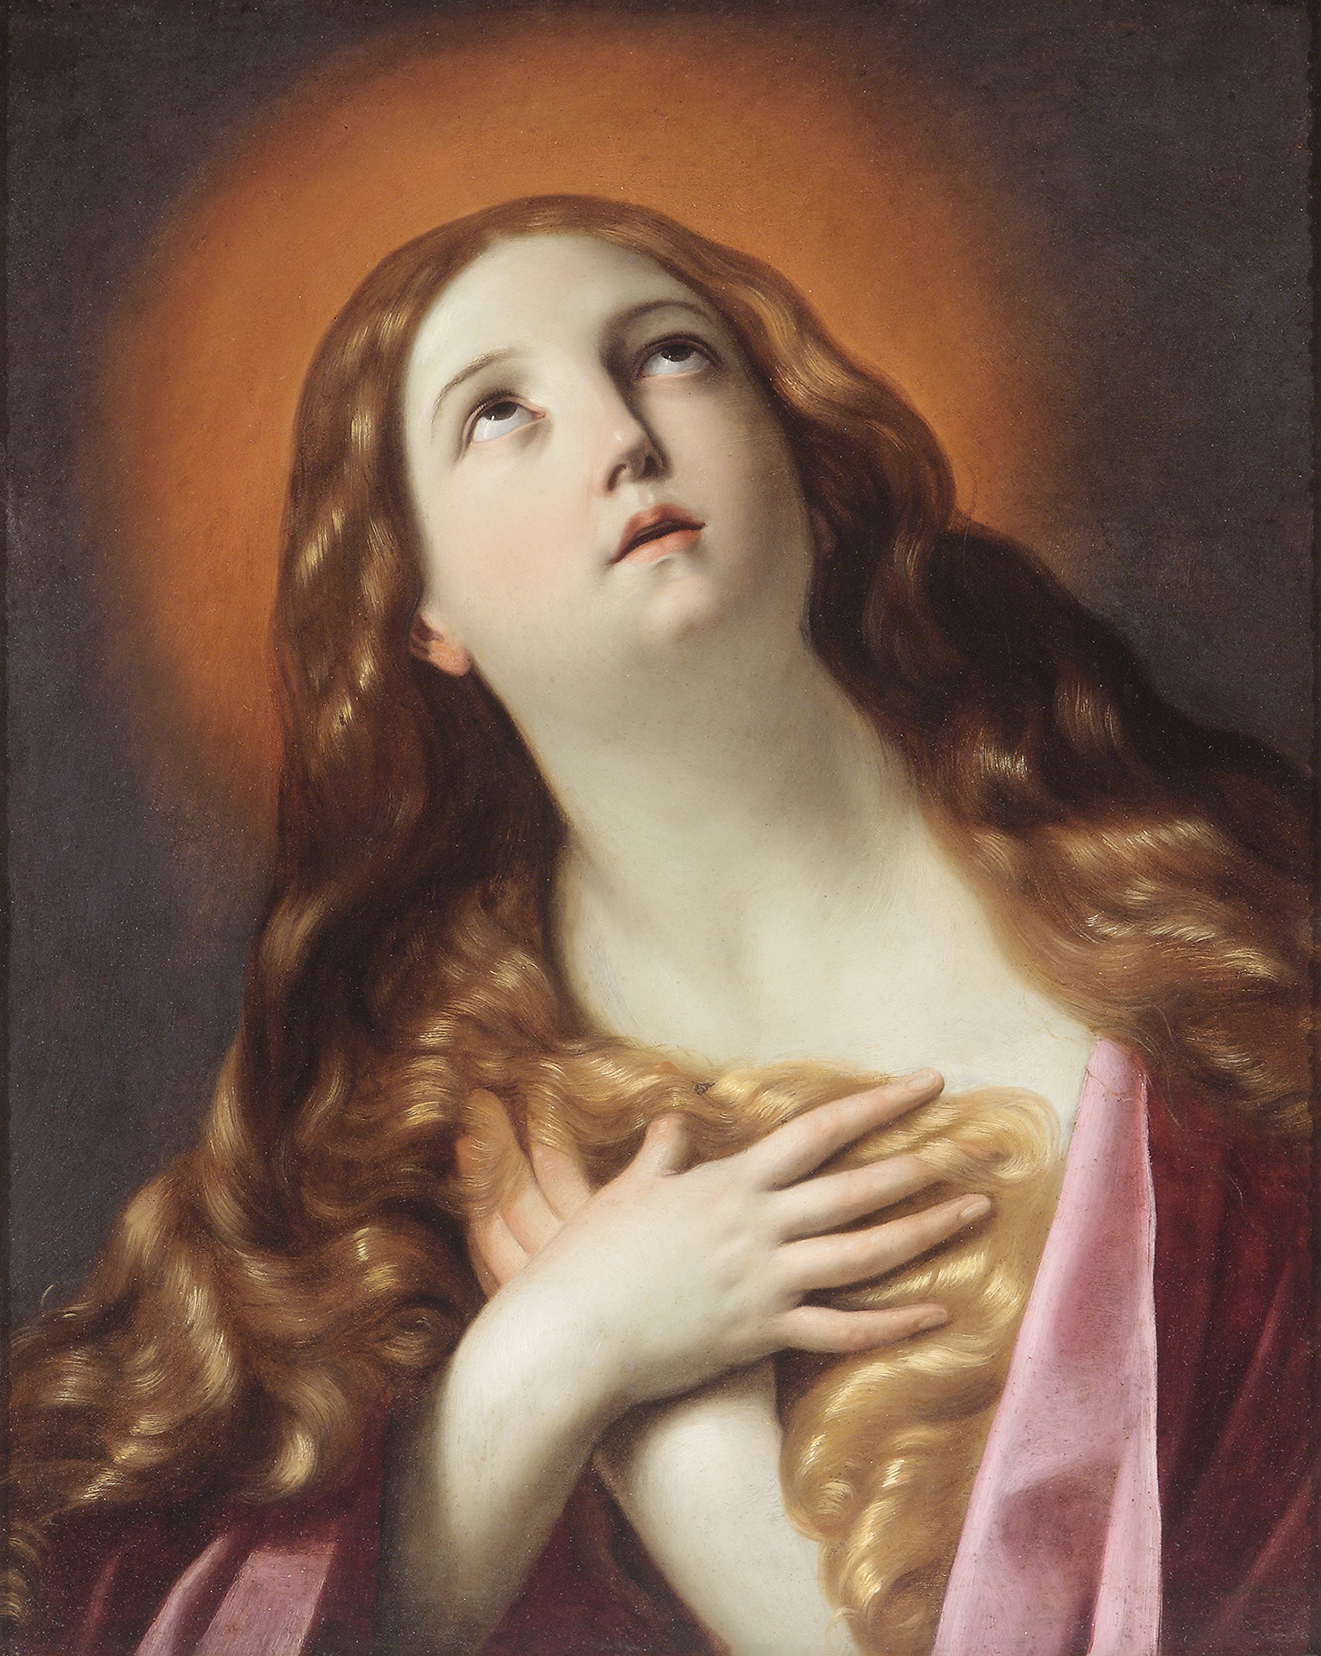 Guido Reni  (b. 1575)  Penitent Magdalene  26 ¾ x 21 ⅙ in. oil on copper